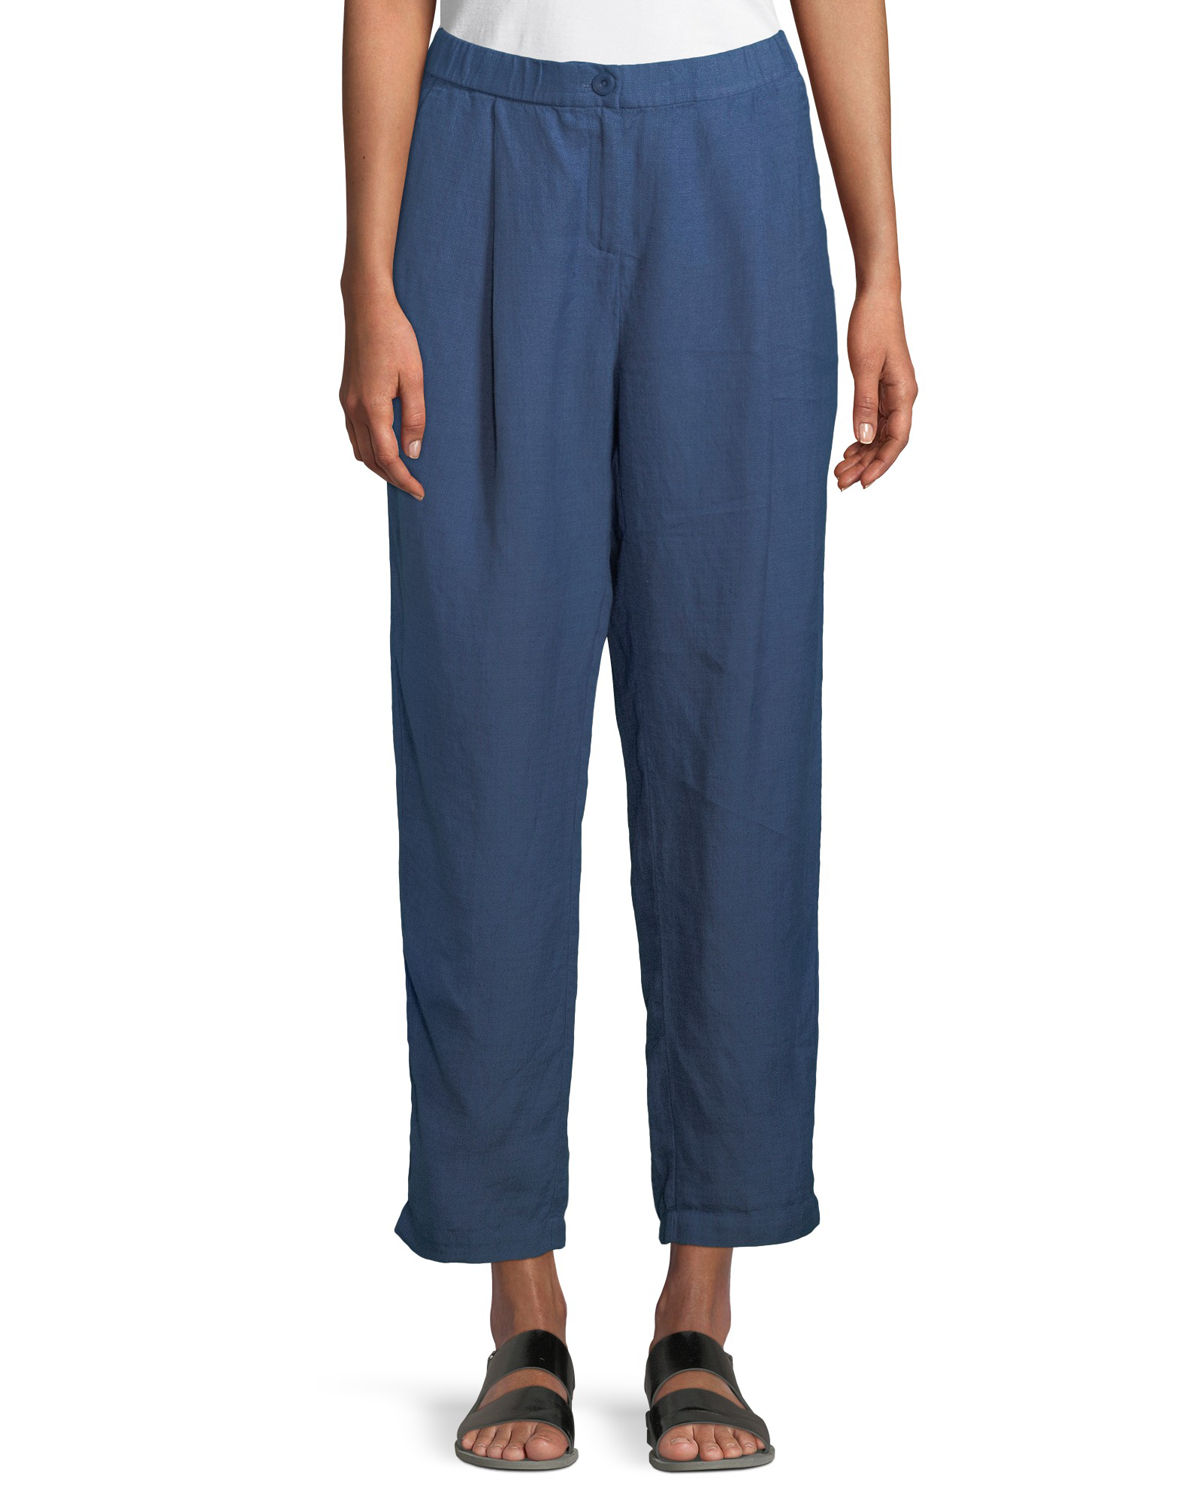 Organic Linen-Crepe Pleated Ankle Trouser Pants